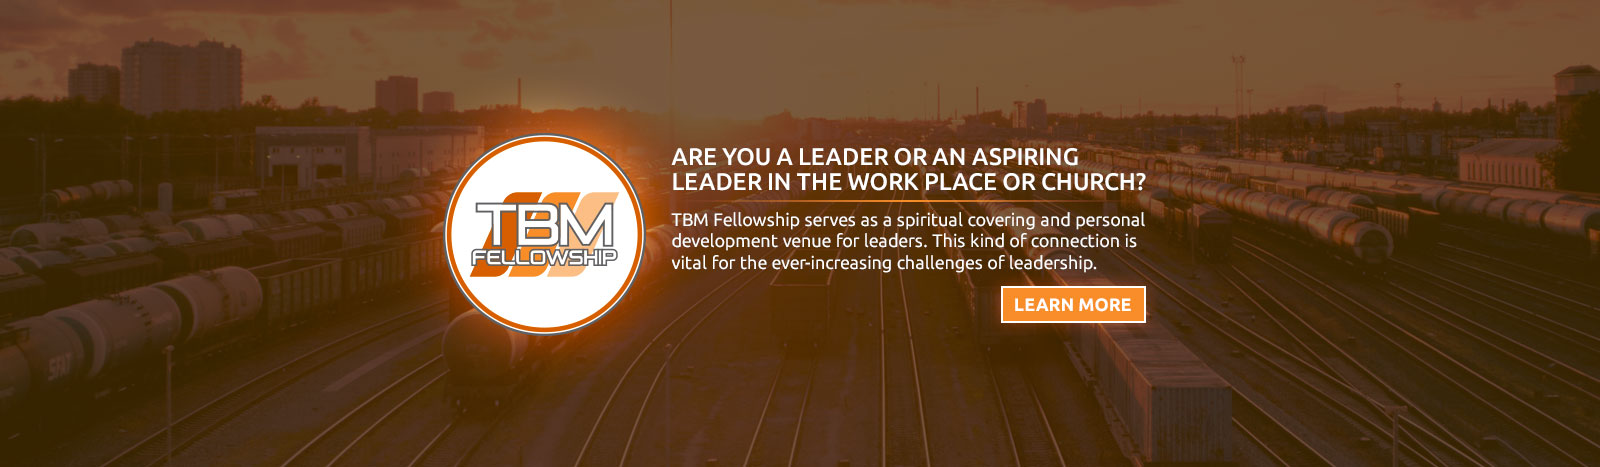 tbm-fellowship-promo-a